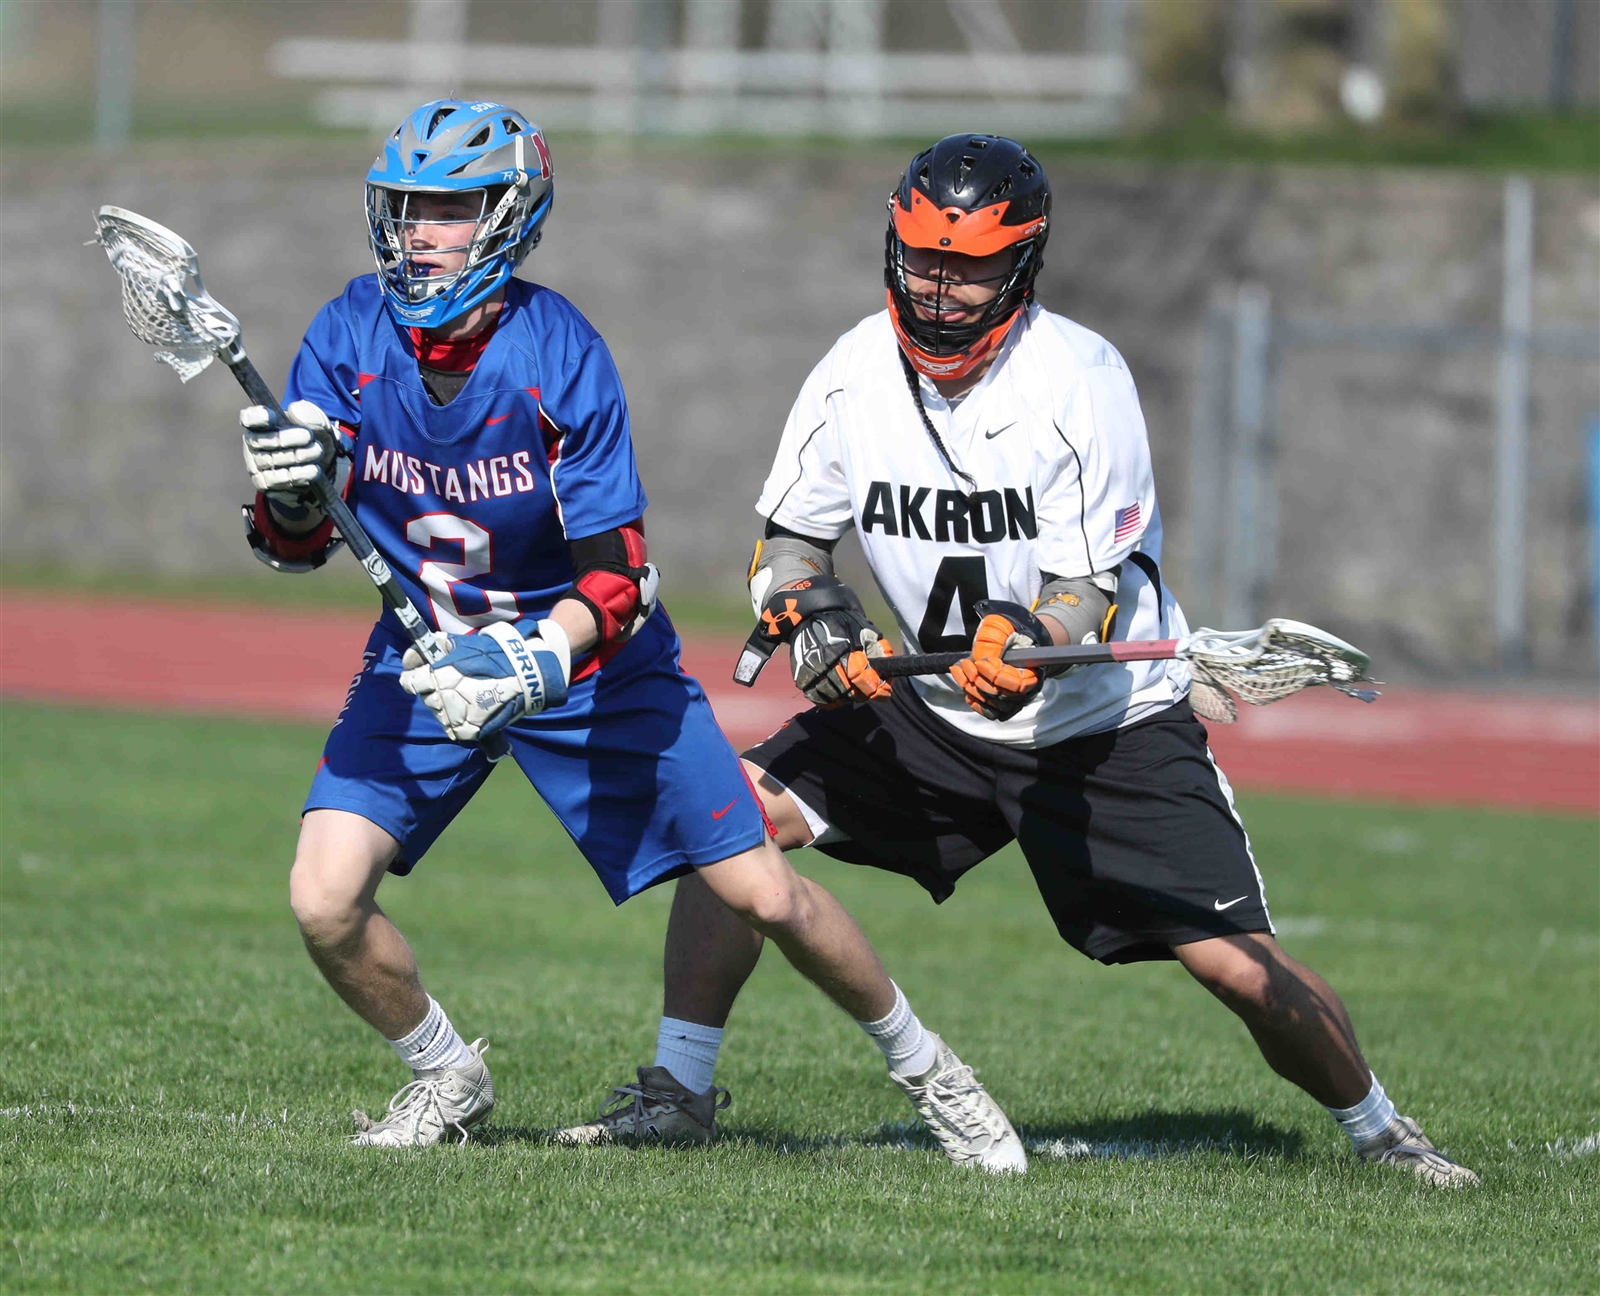 Owen Hill of Akron battles Mason Lewis of Medina for the ball.